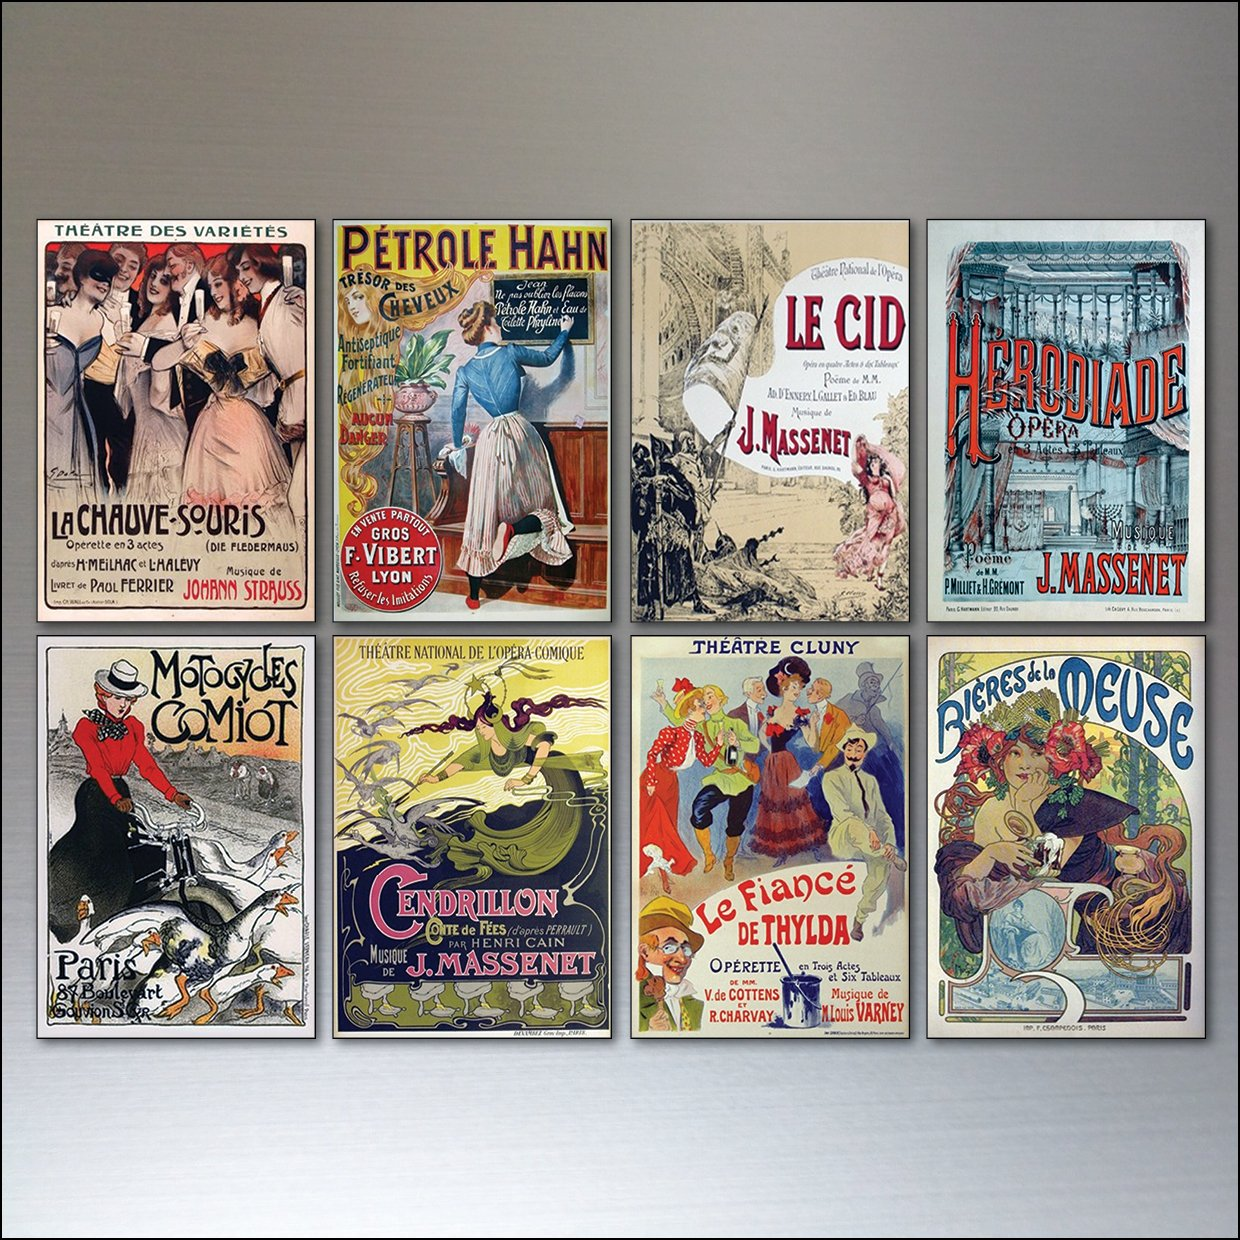 8 Vintage French Advertising Poster Fridge Magnets - Shabby, Chic, bohemian